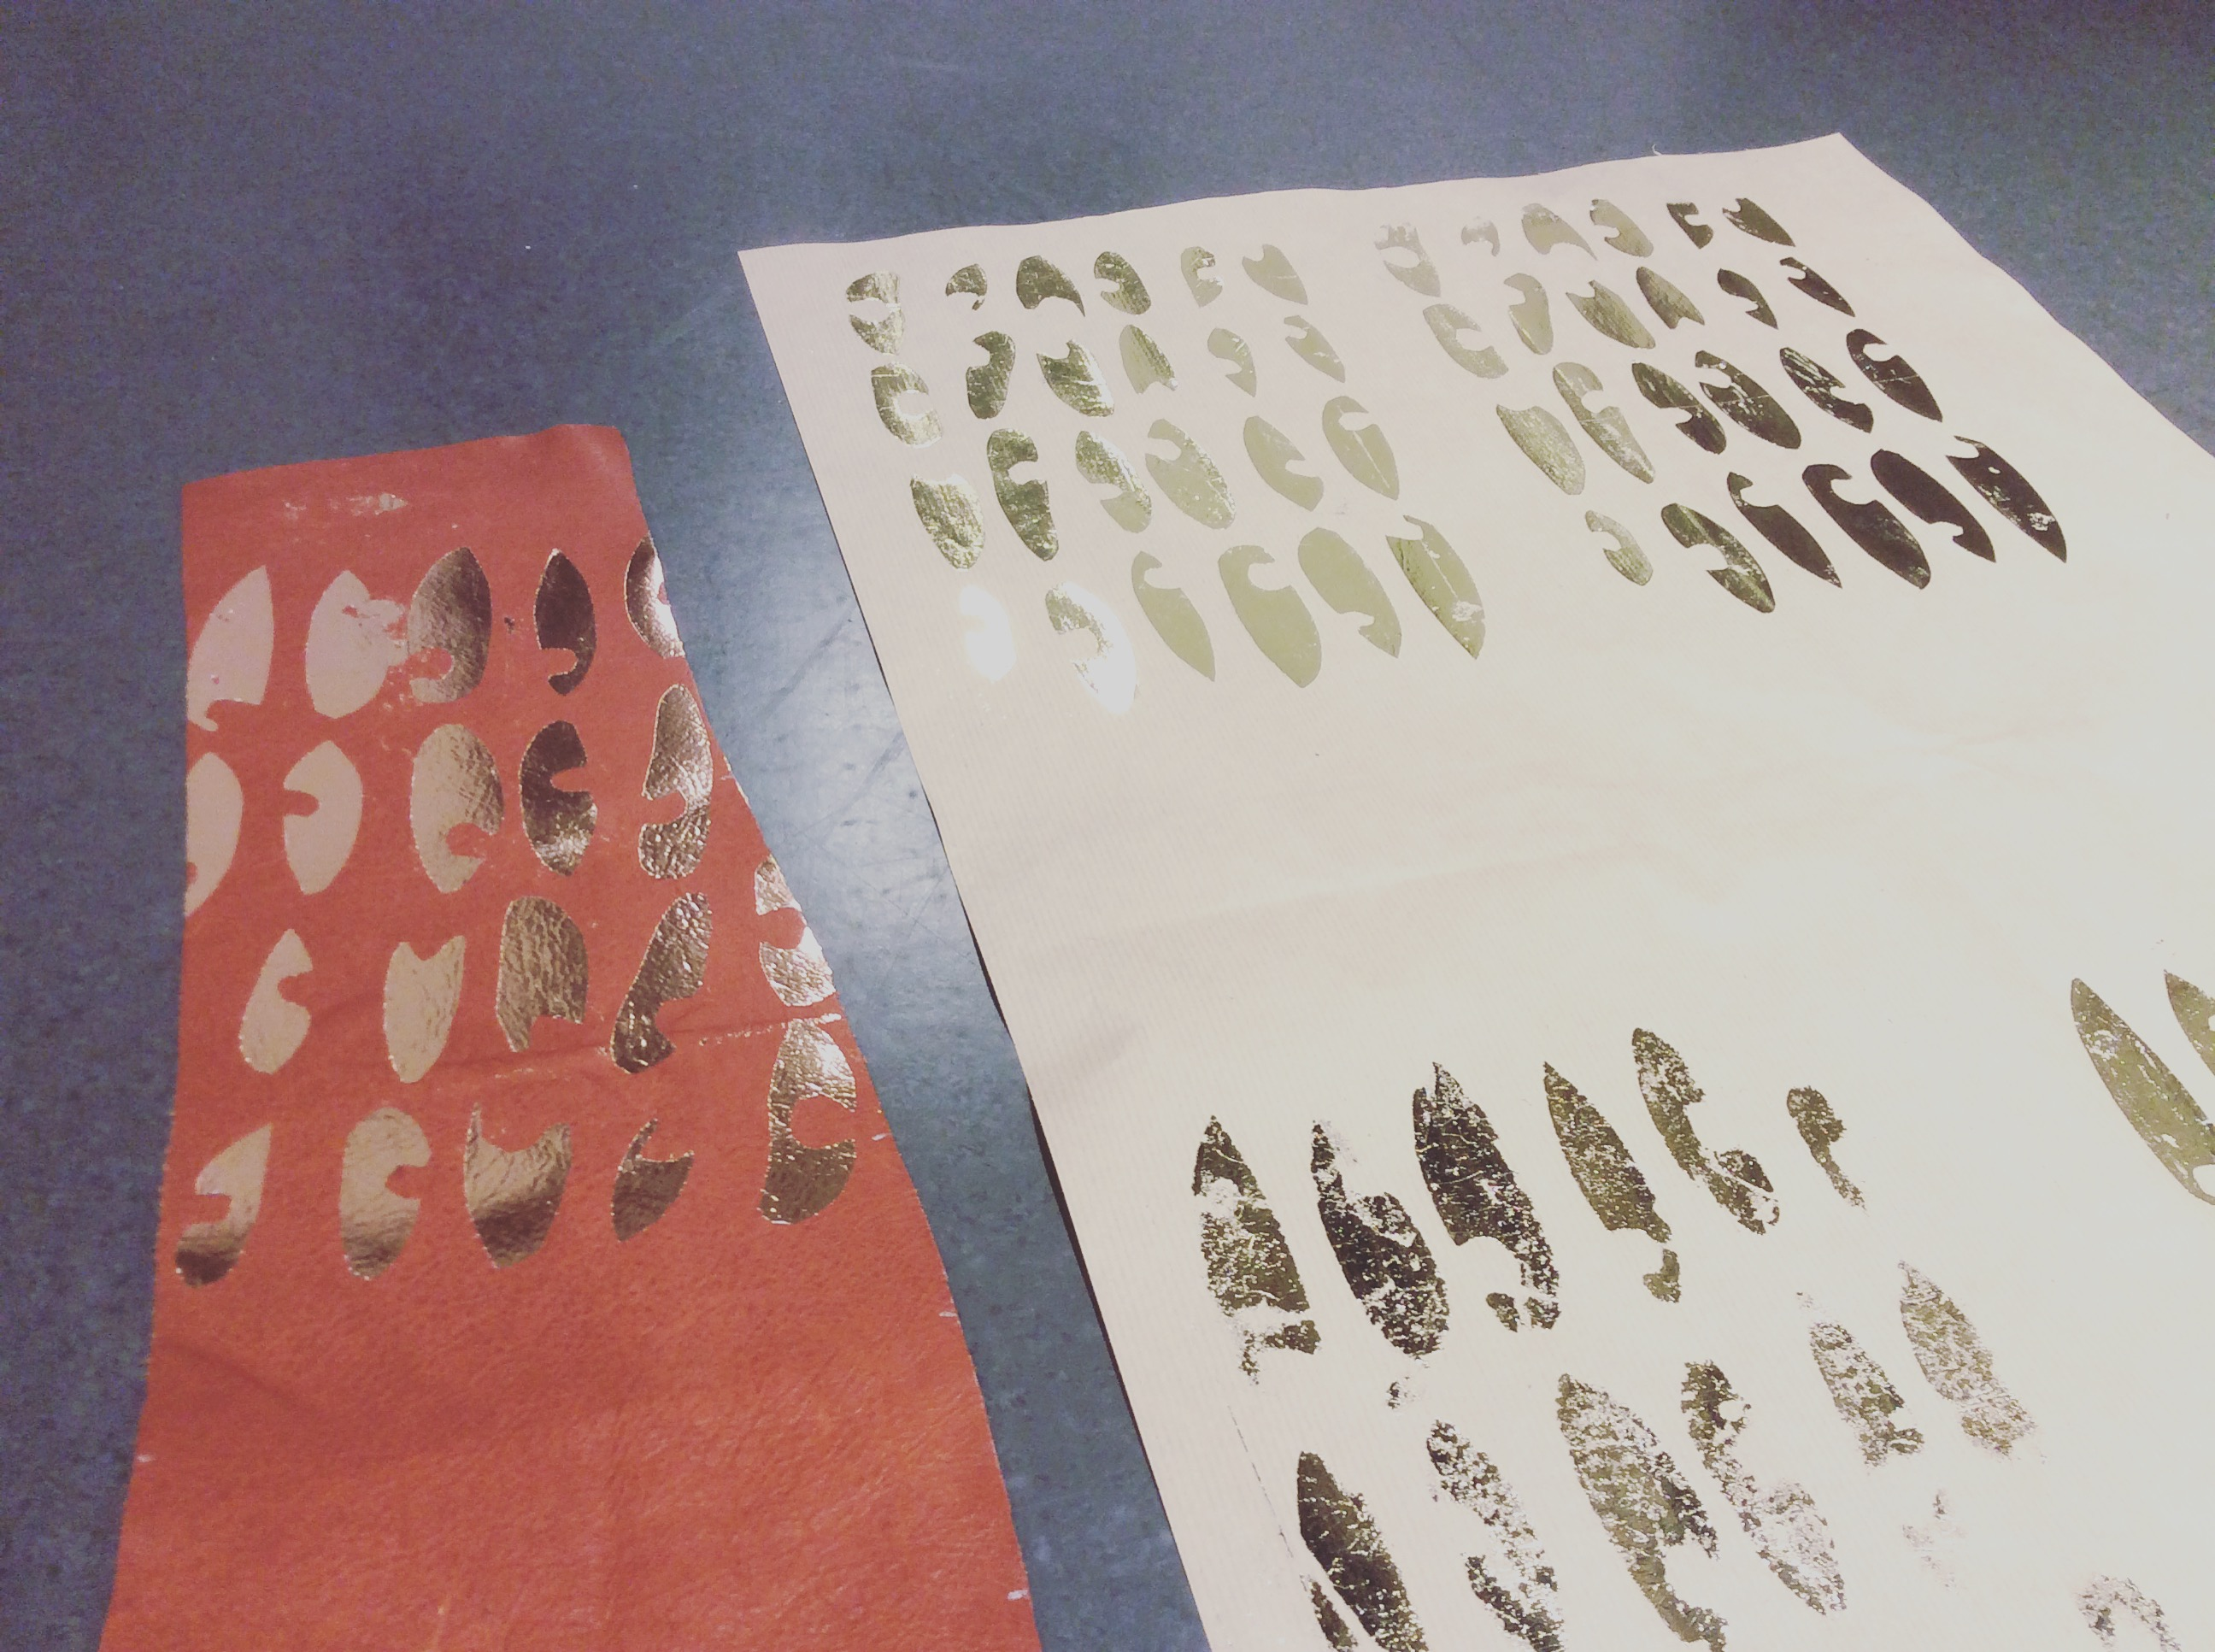 Metallic Printing Workshop at Wimbledon Art Studios (Christmas Gift Making)